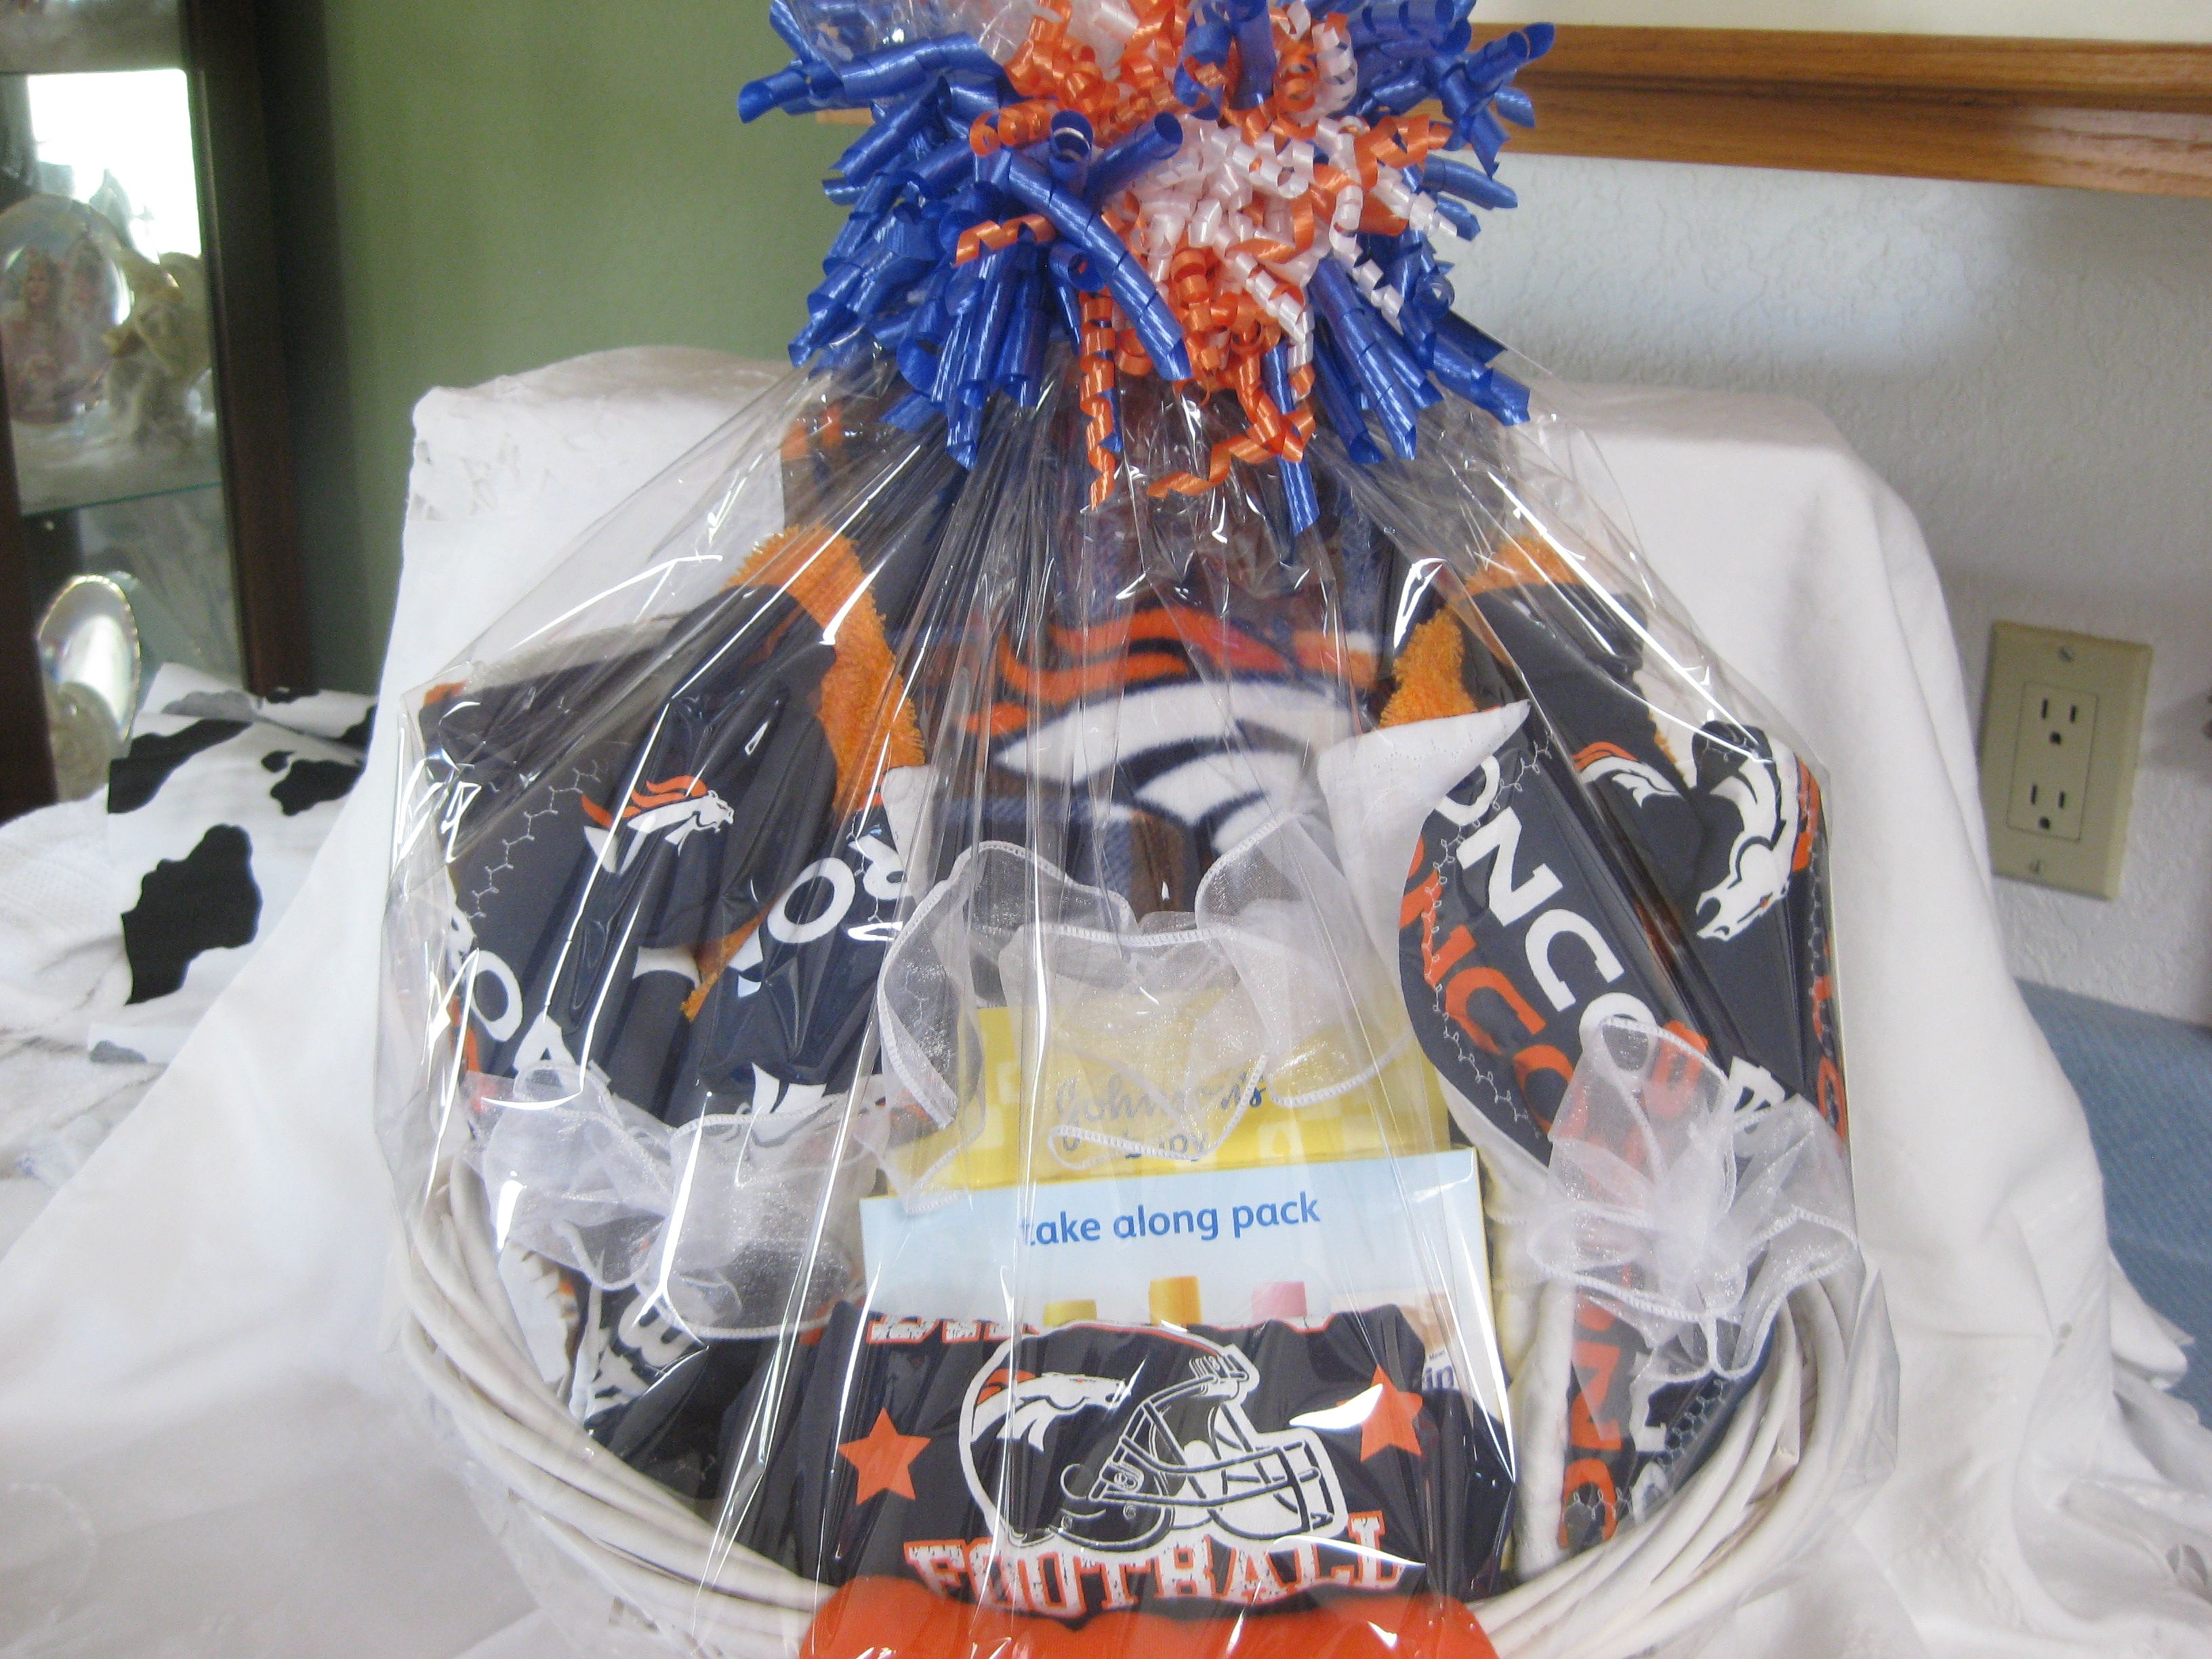 Denver broncos baby gift basket a blanket two washcloths, two ...